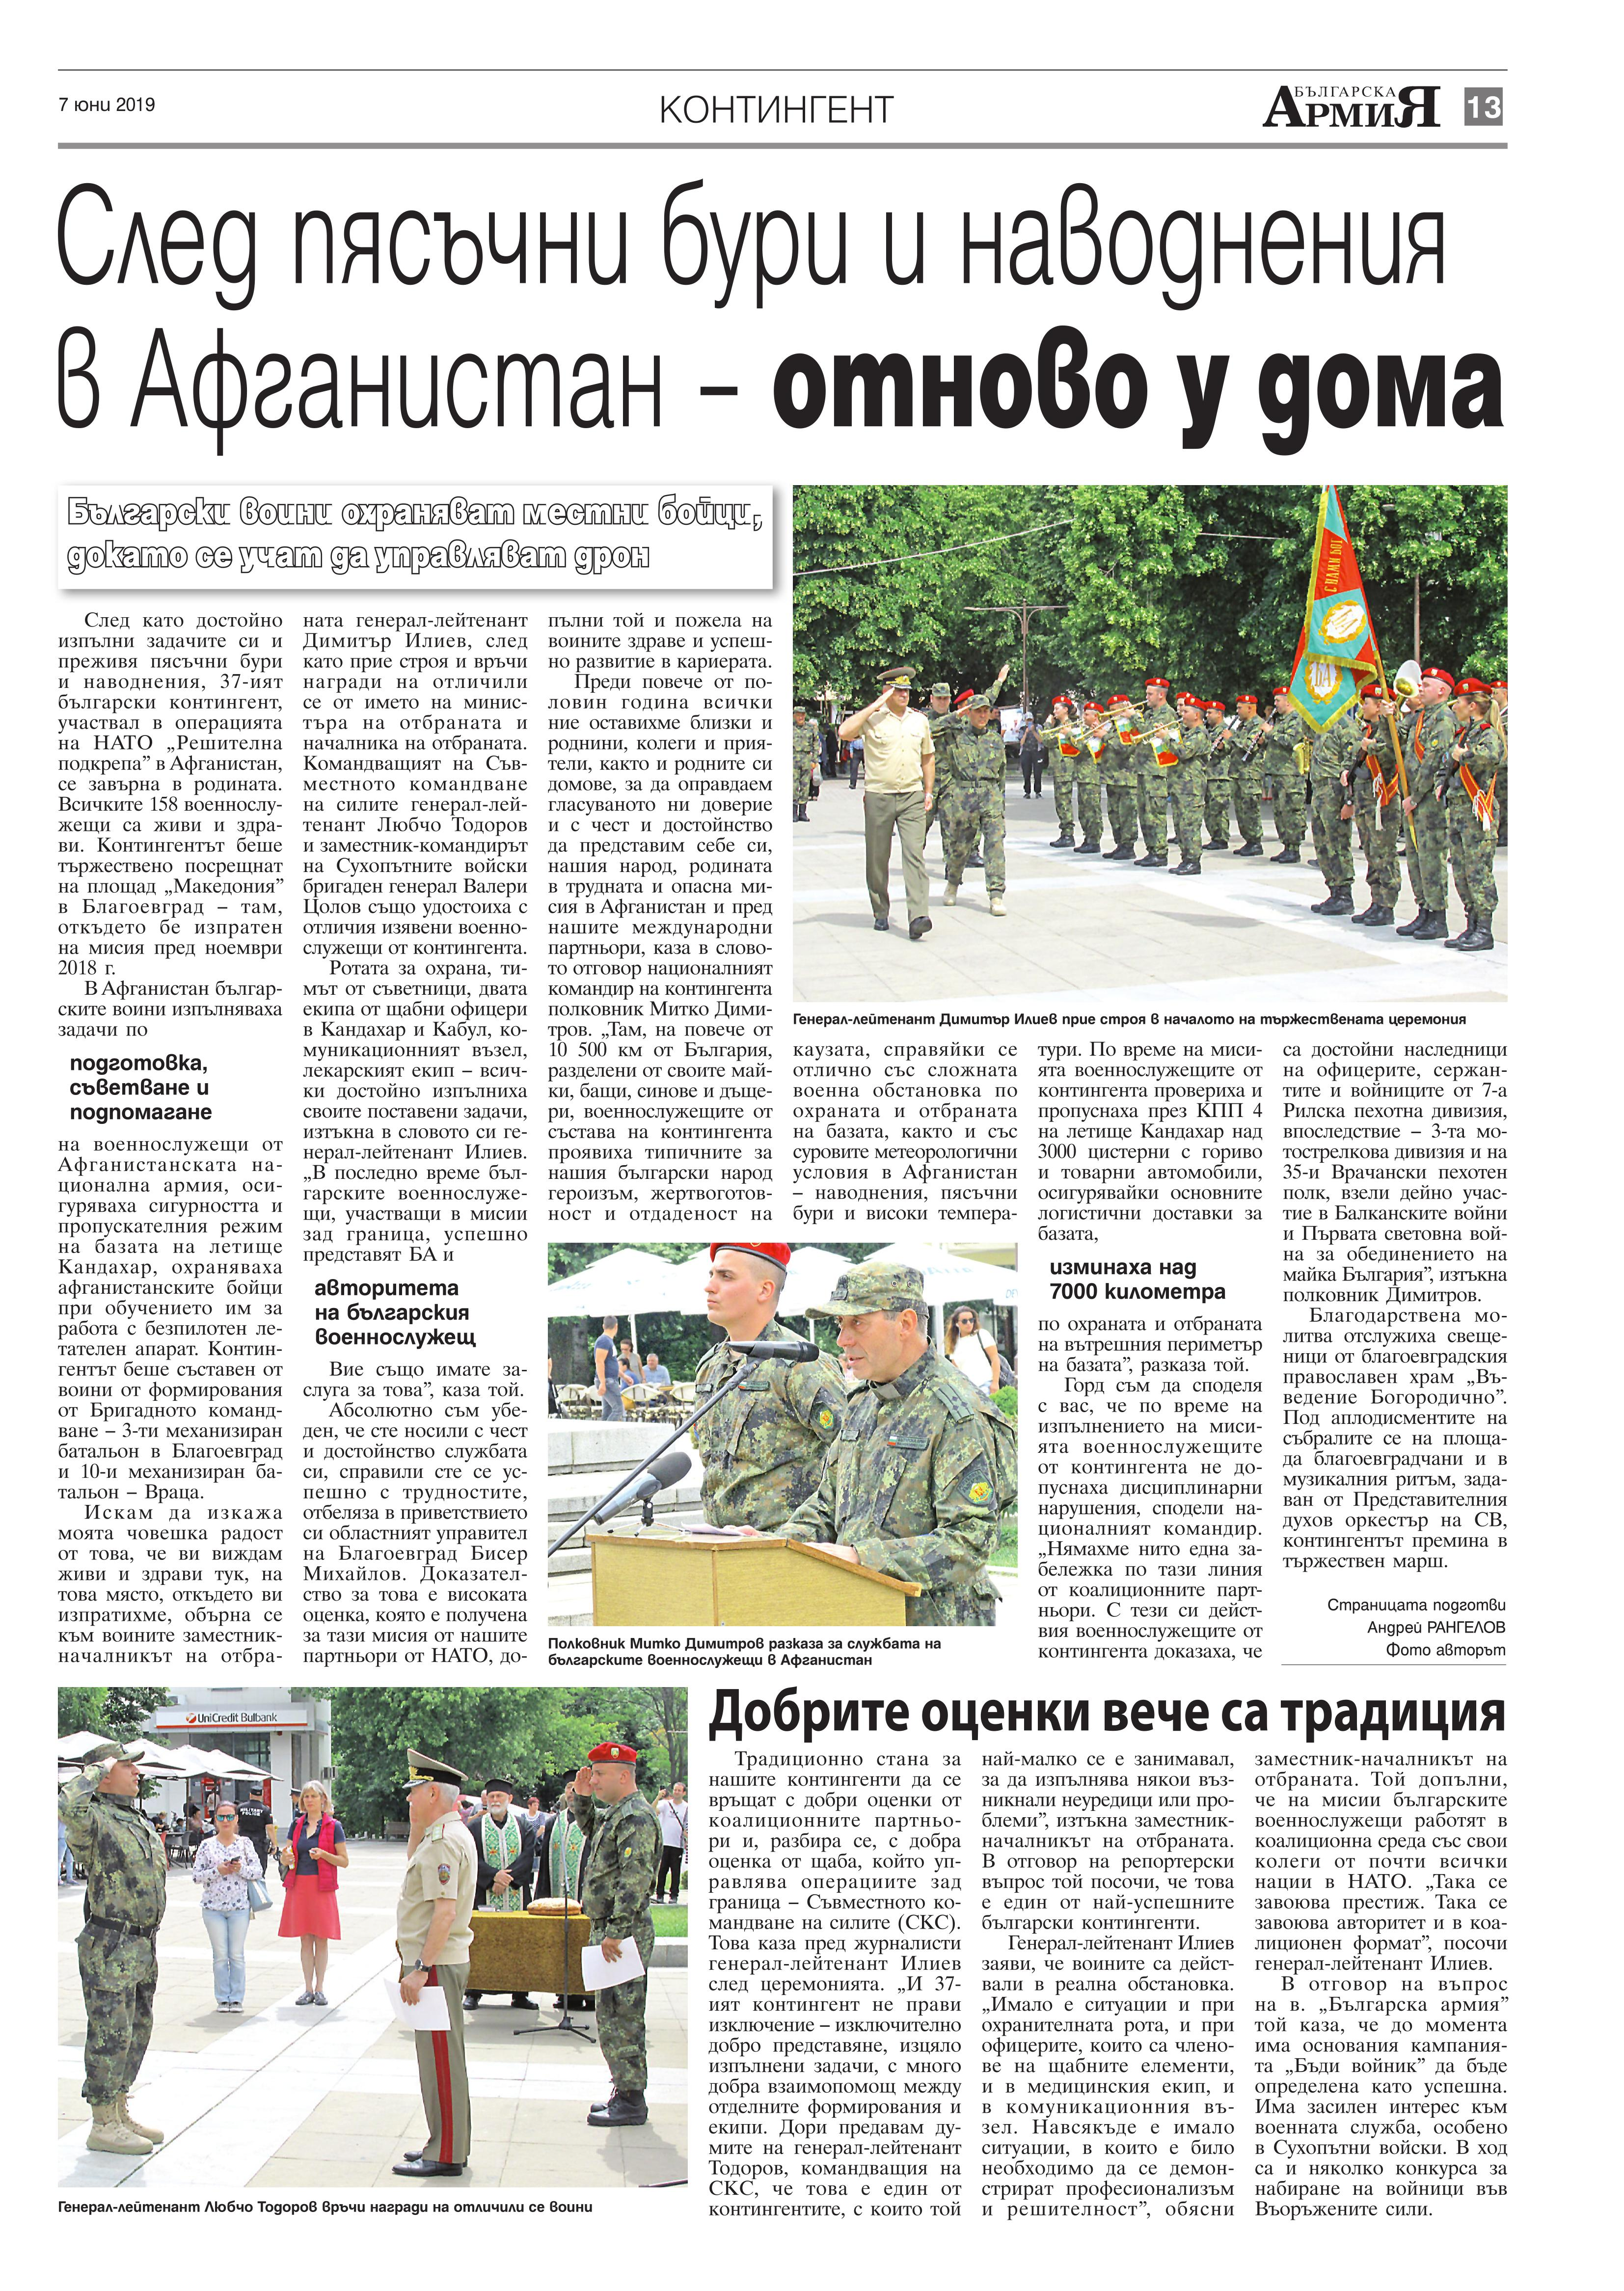 https://armymedia.bg/wp-content/uploads/2015/06/13.page1_-98.jpg